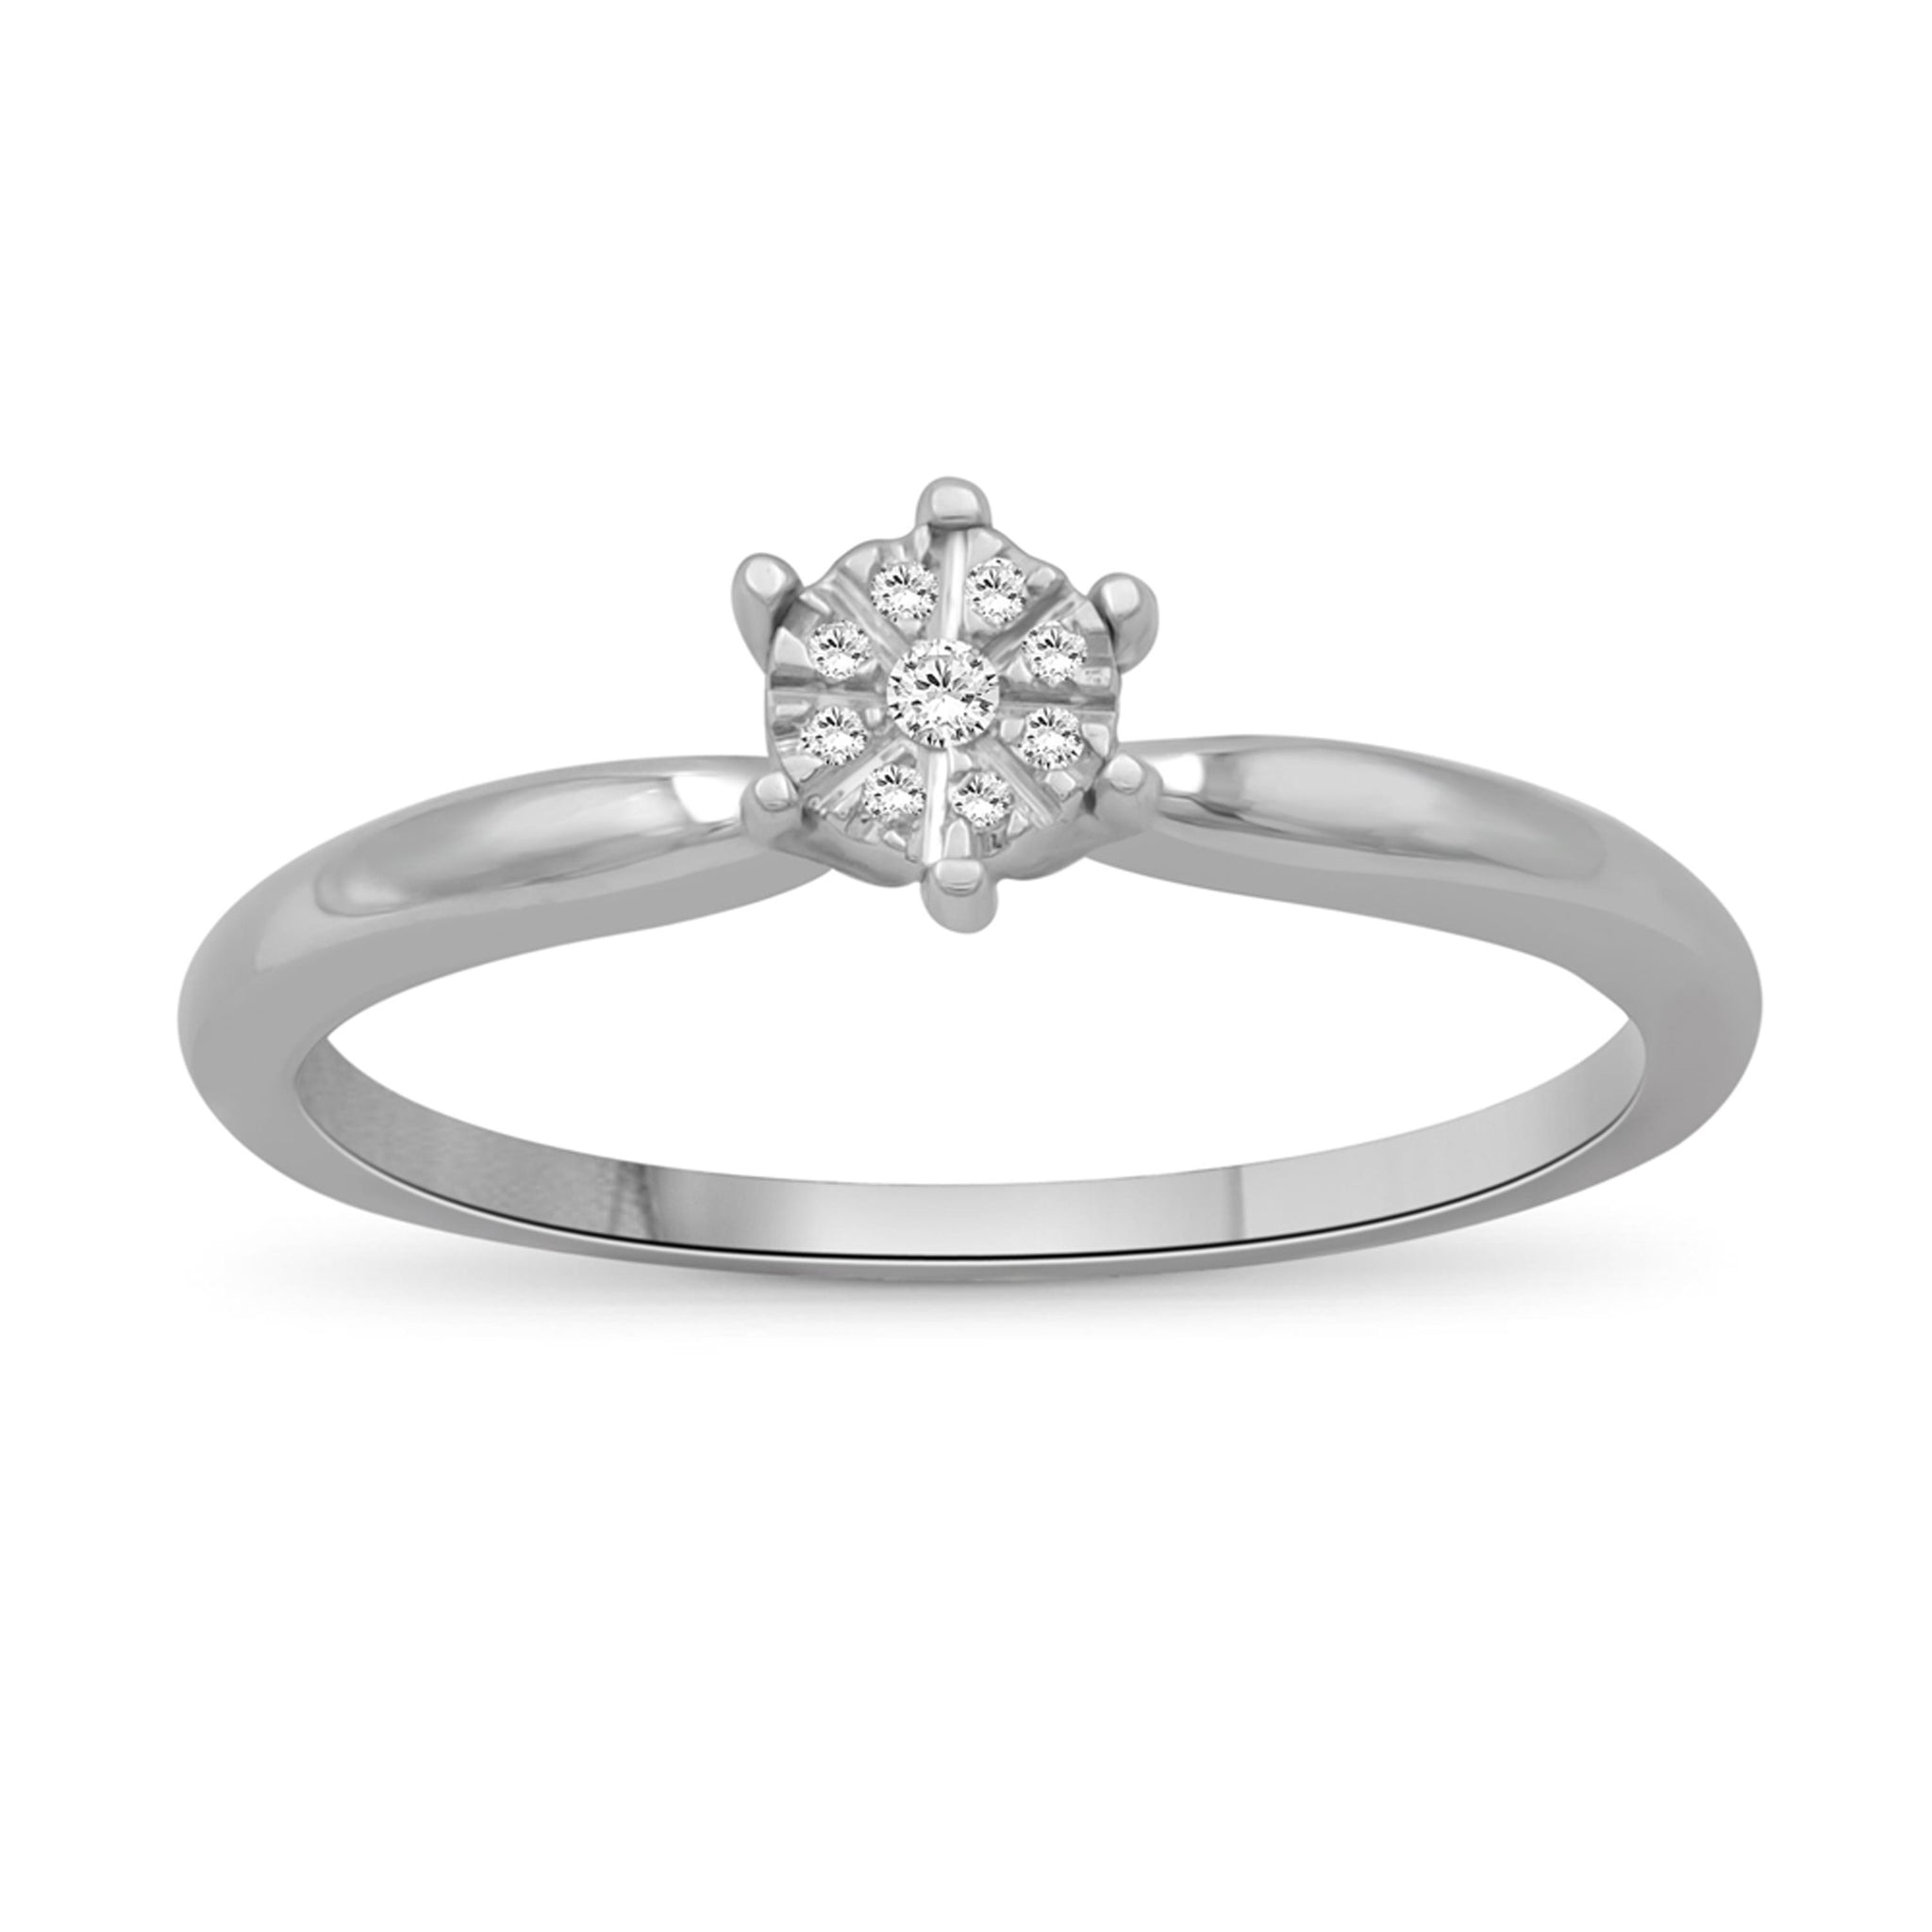 JewelonFire 1/20 Carat T.W. White Diamond Sterling Silver Cluster Ring - Assorted Colors